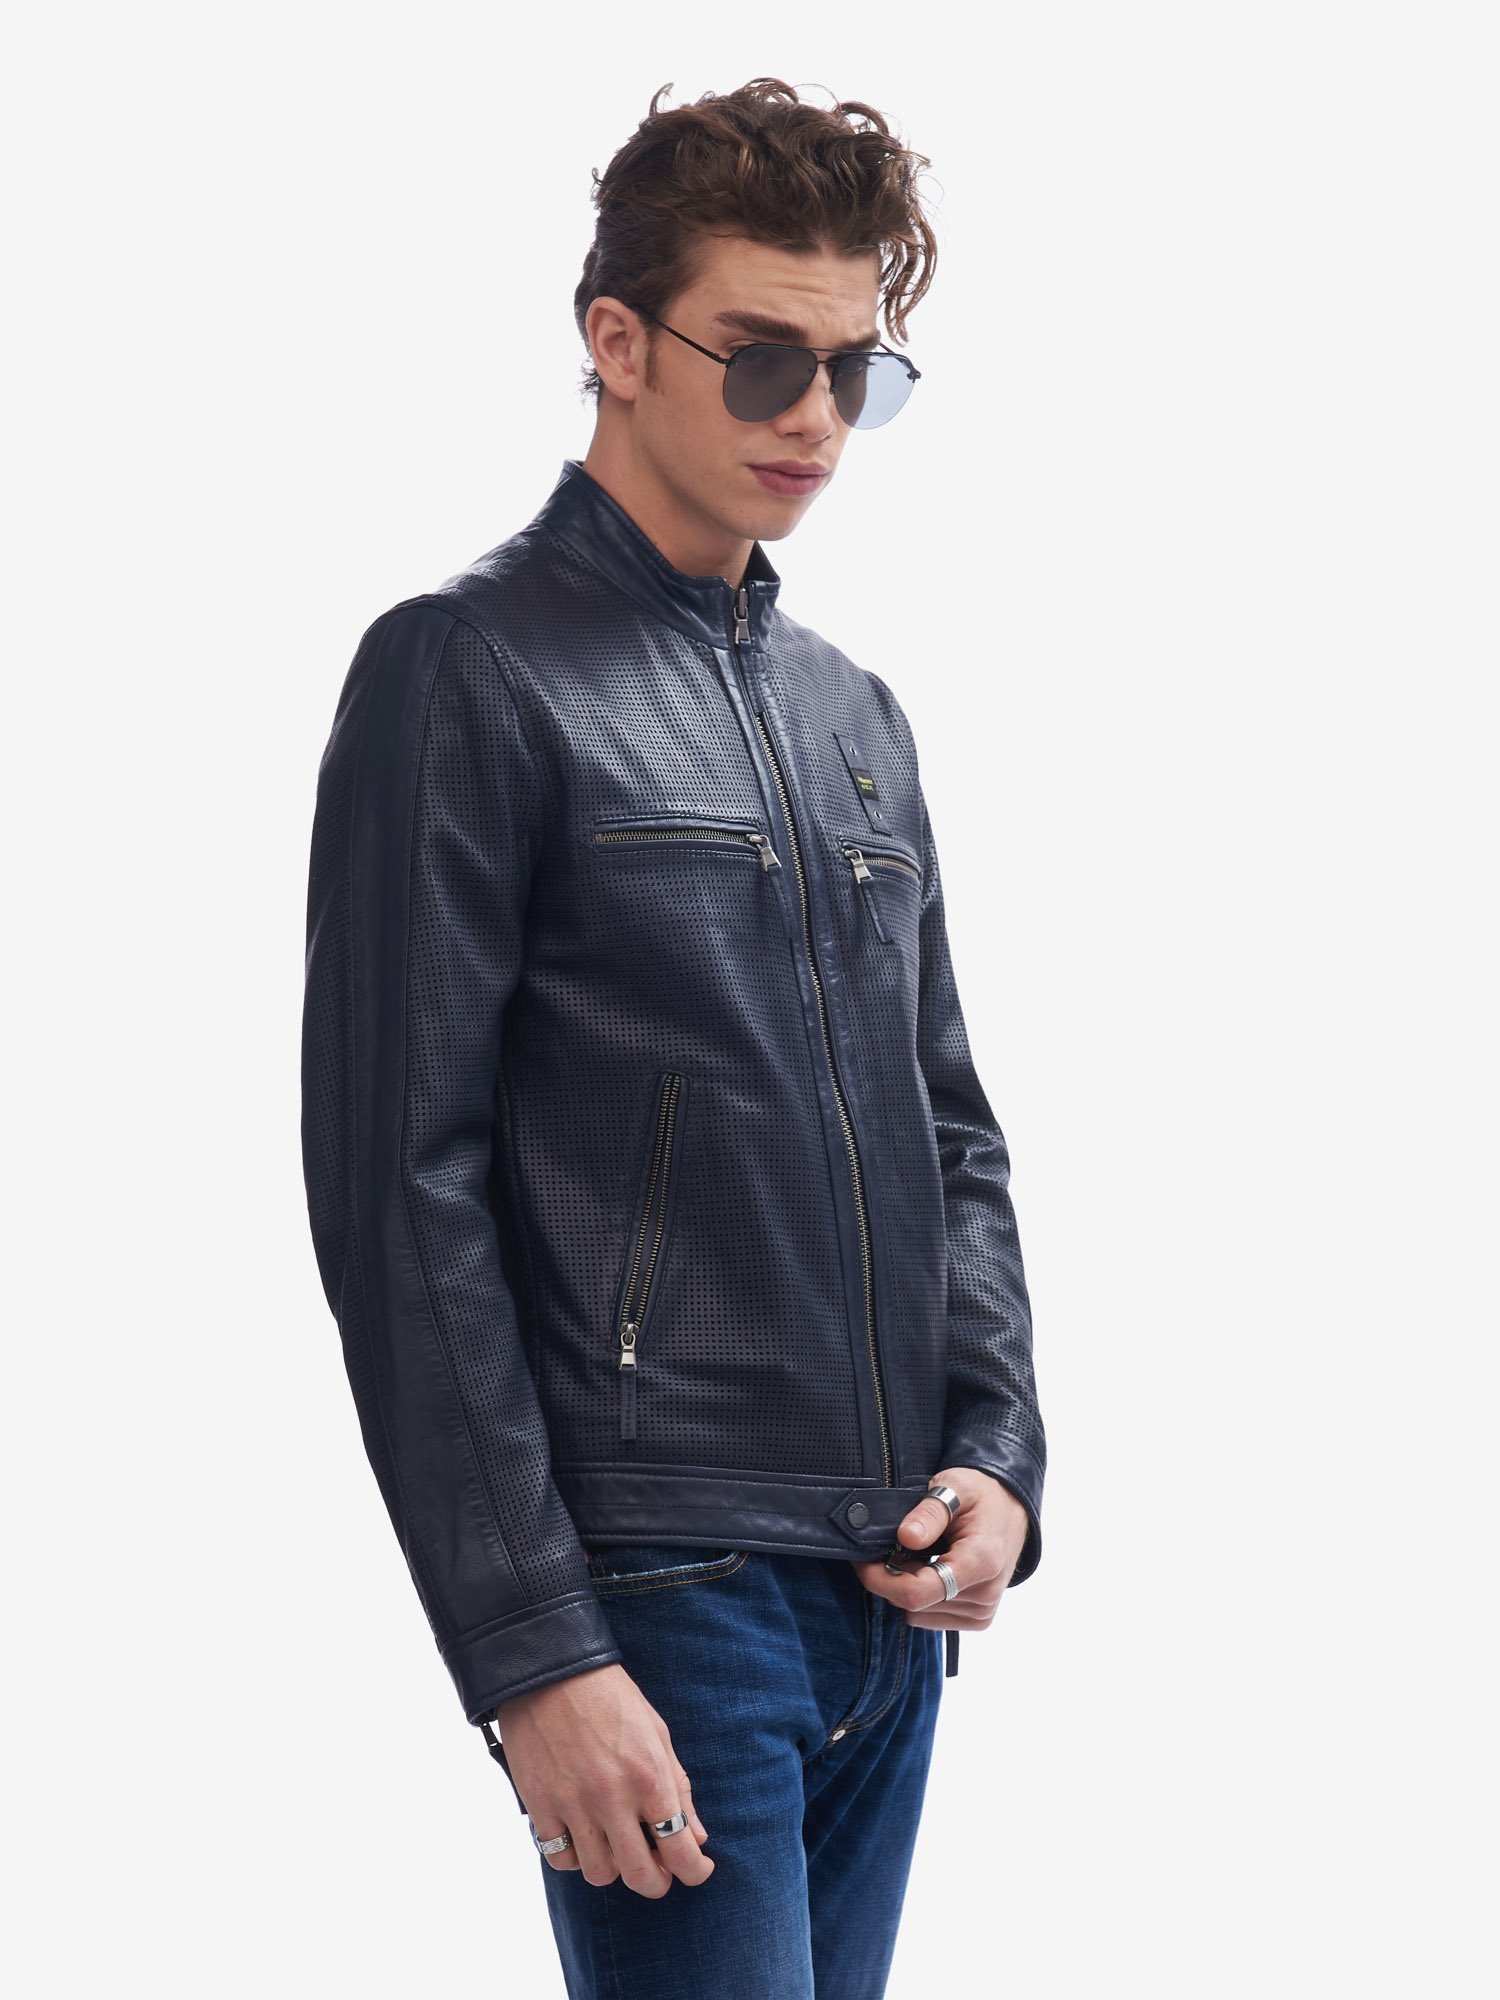 DONNELLY PERFORATED LEATHER JACKET - Blauer